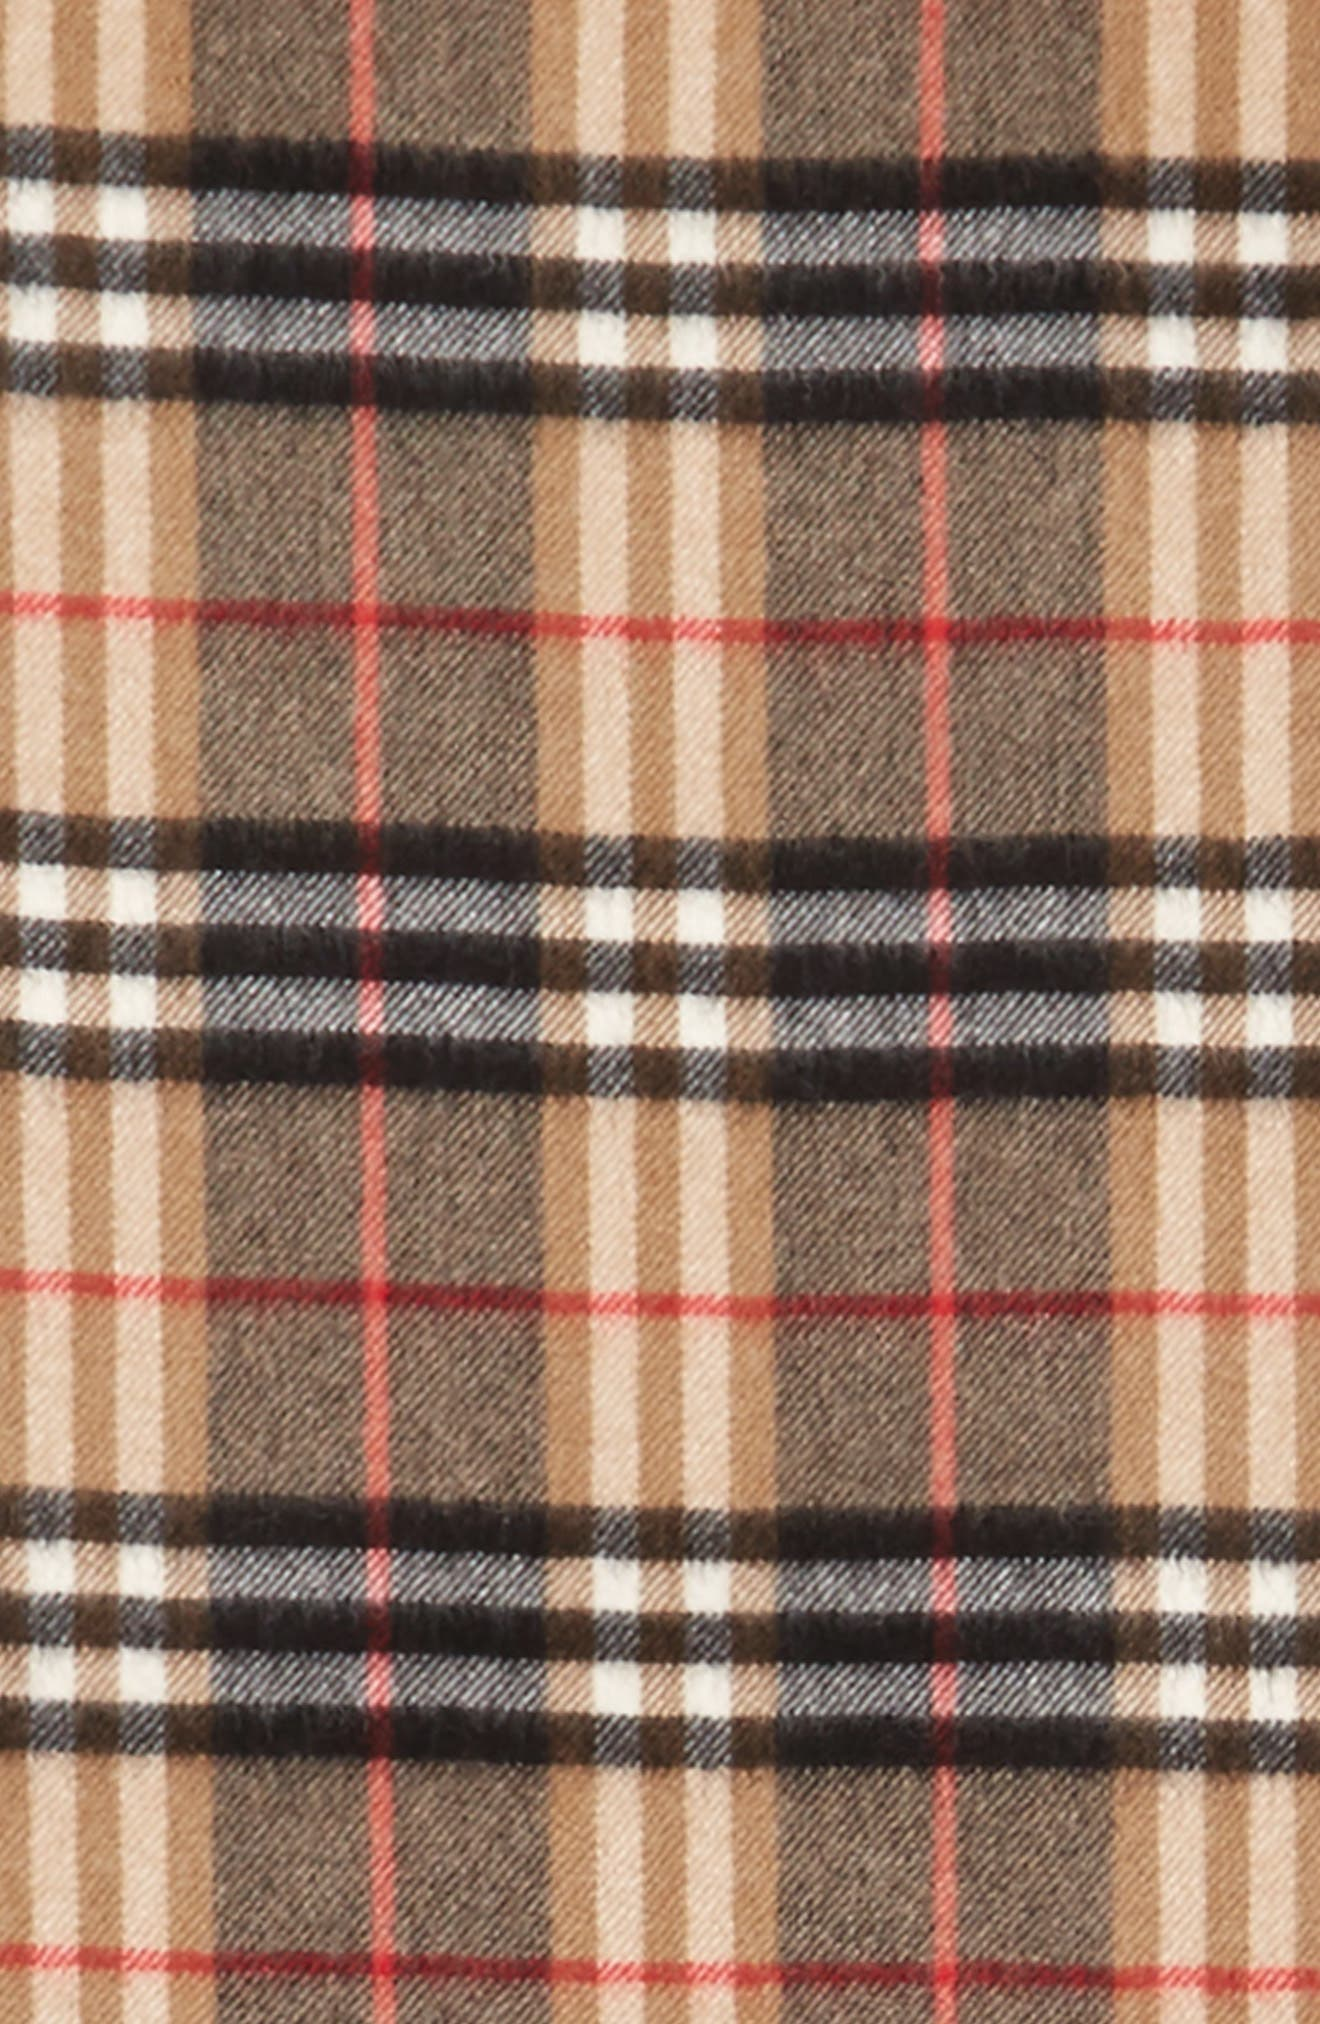 Castleford Check Cashmere Scarf,                             Alternate thumbnail 3, color,                             Camel